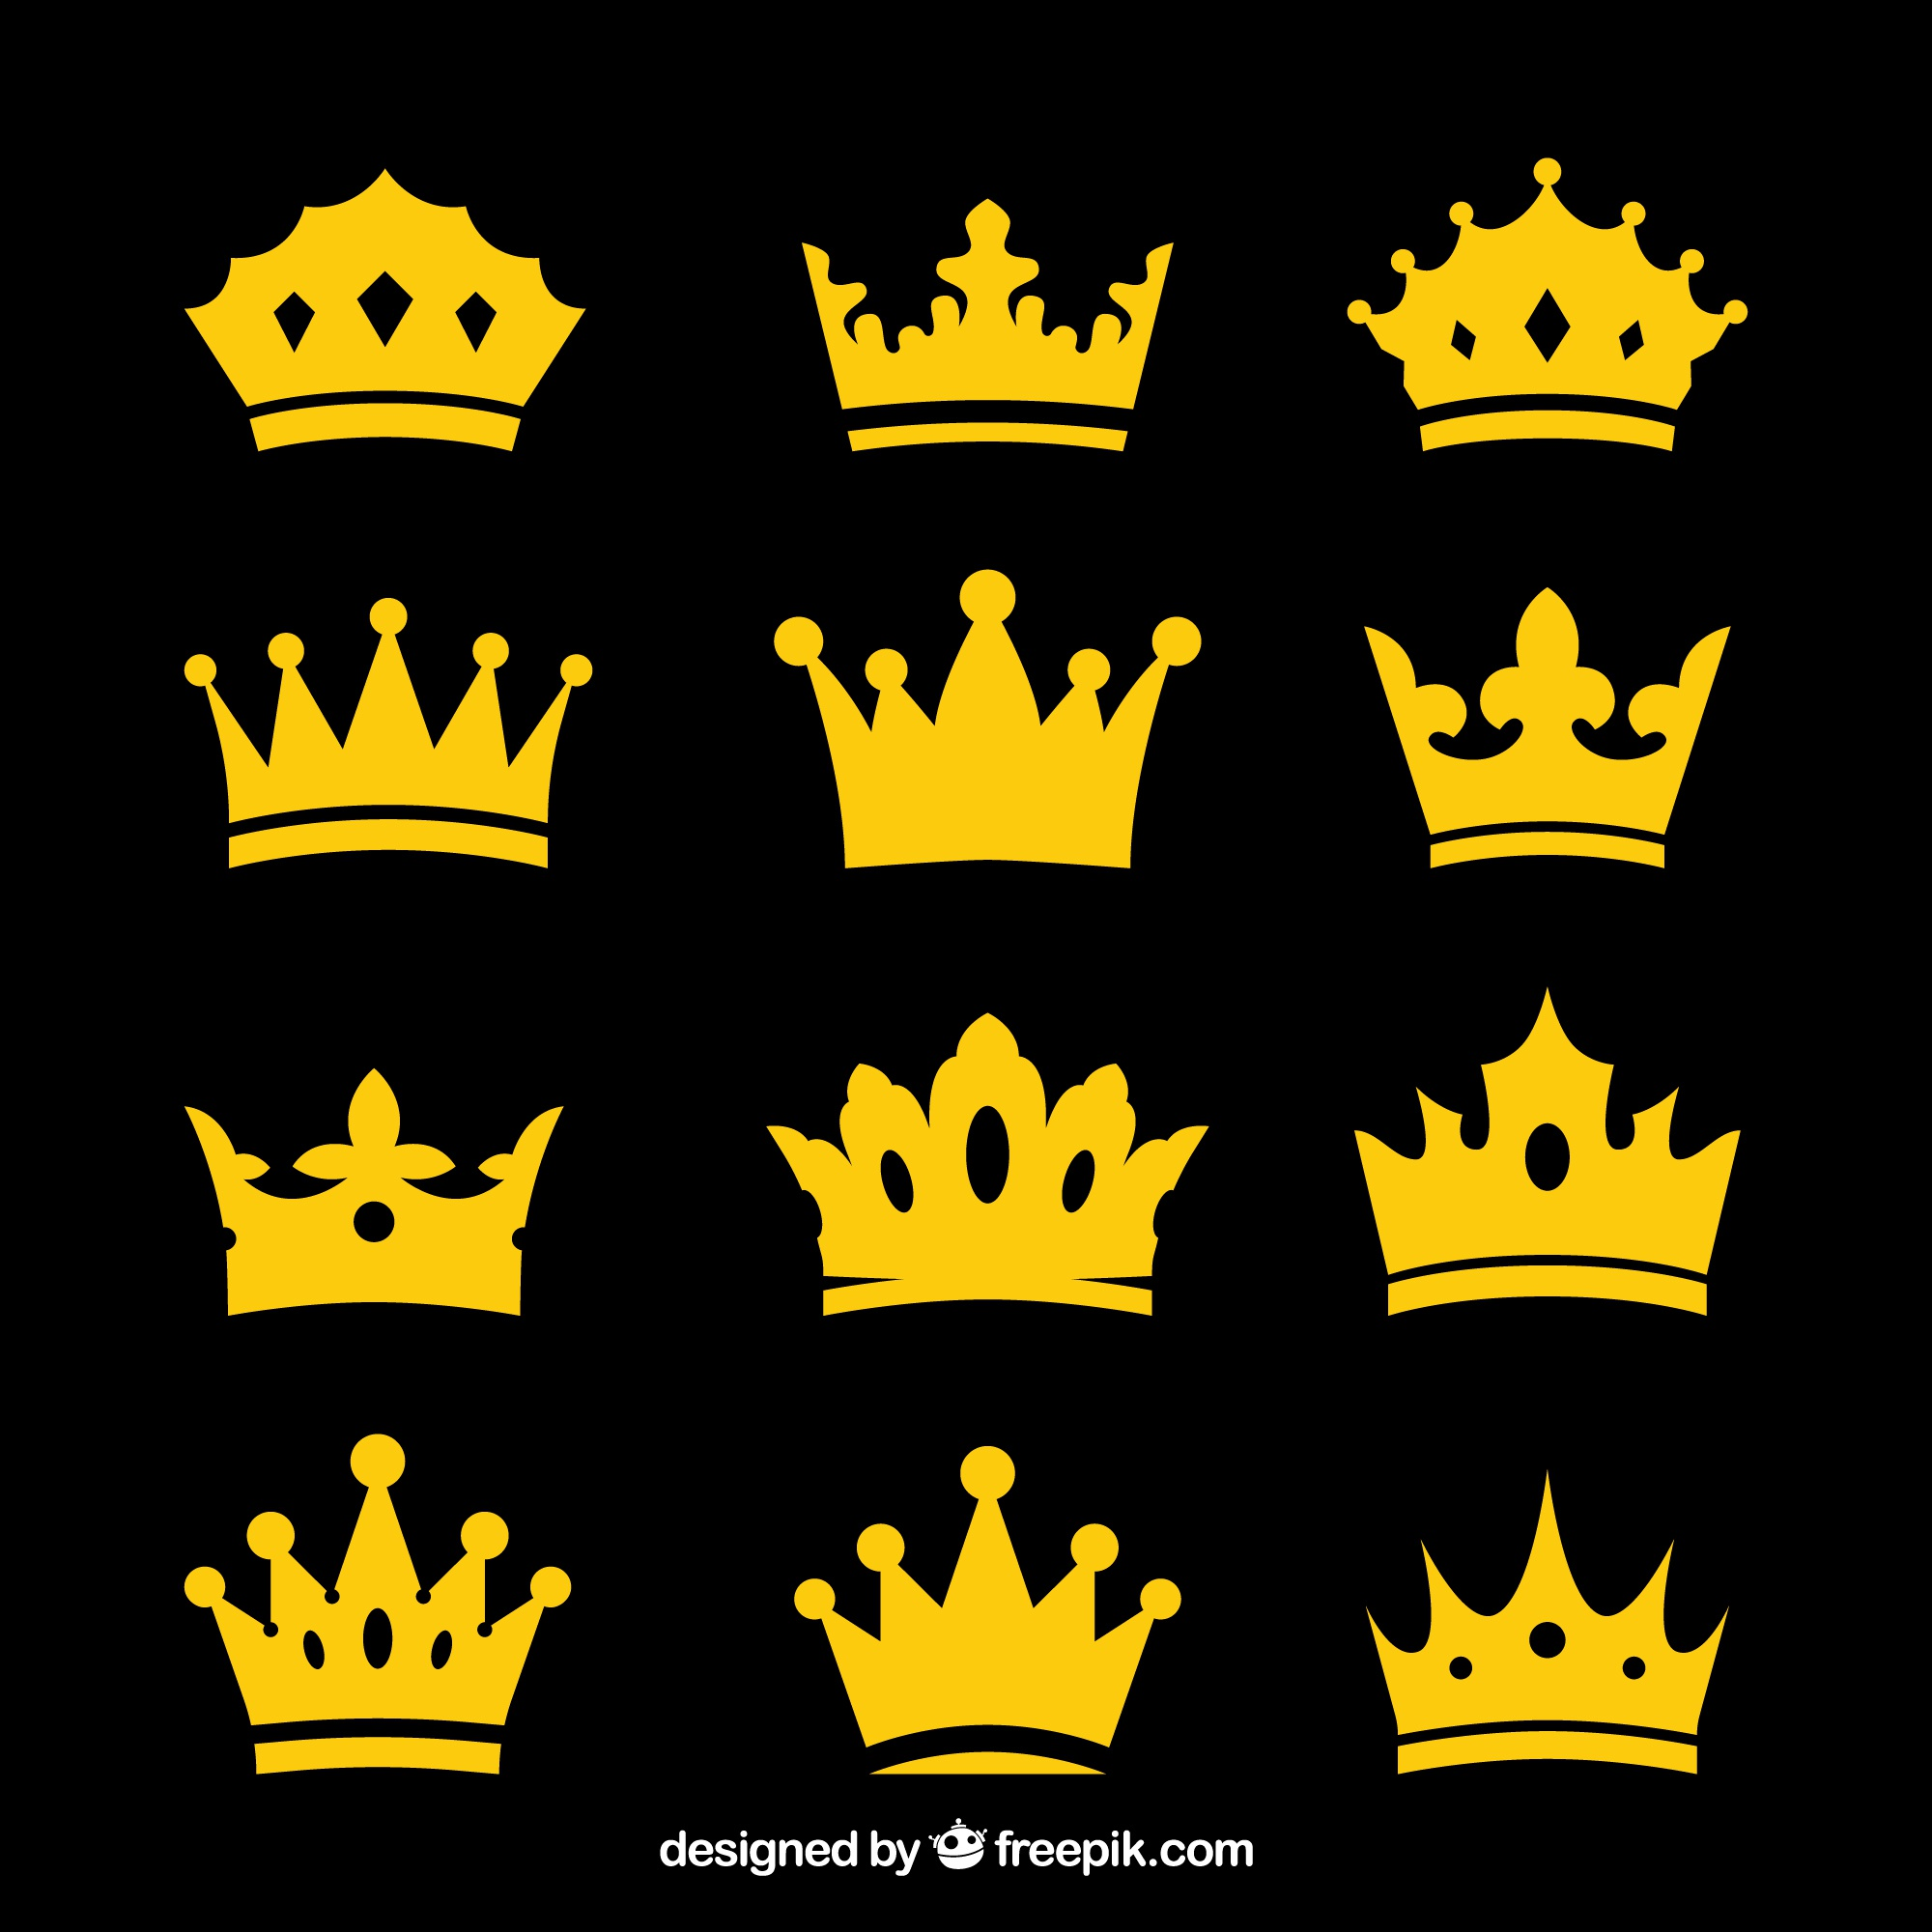 Selection of decorative crowns in flat design